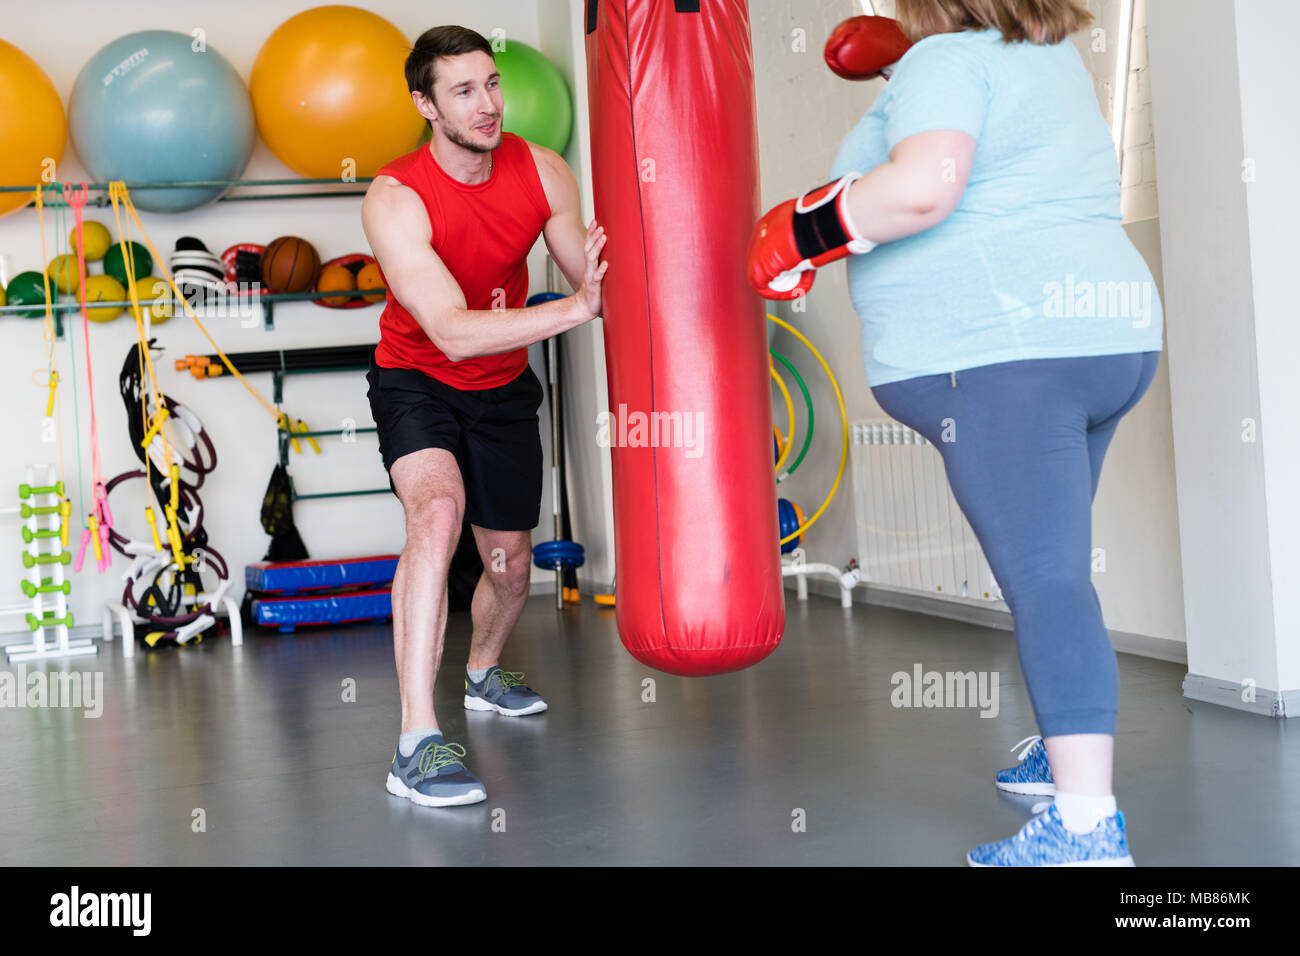 Fitness Trainer Helping Overweight Woman - Stock Image